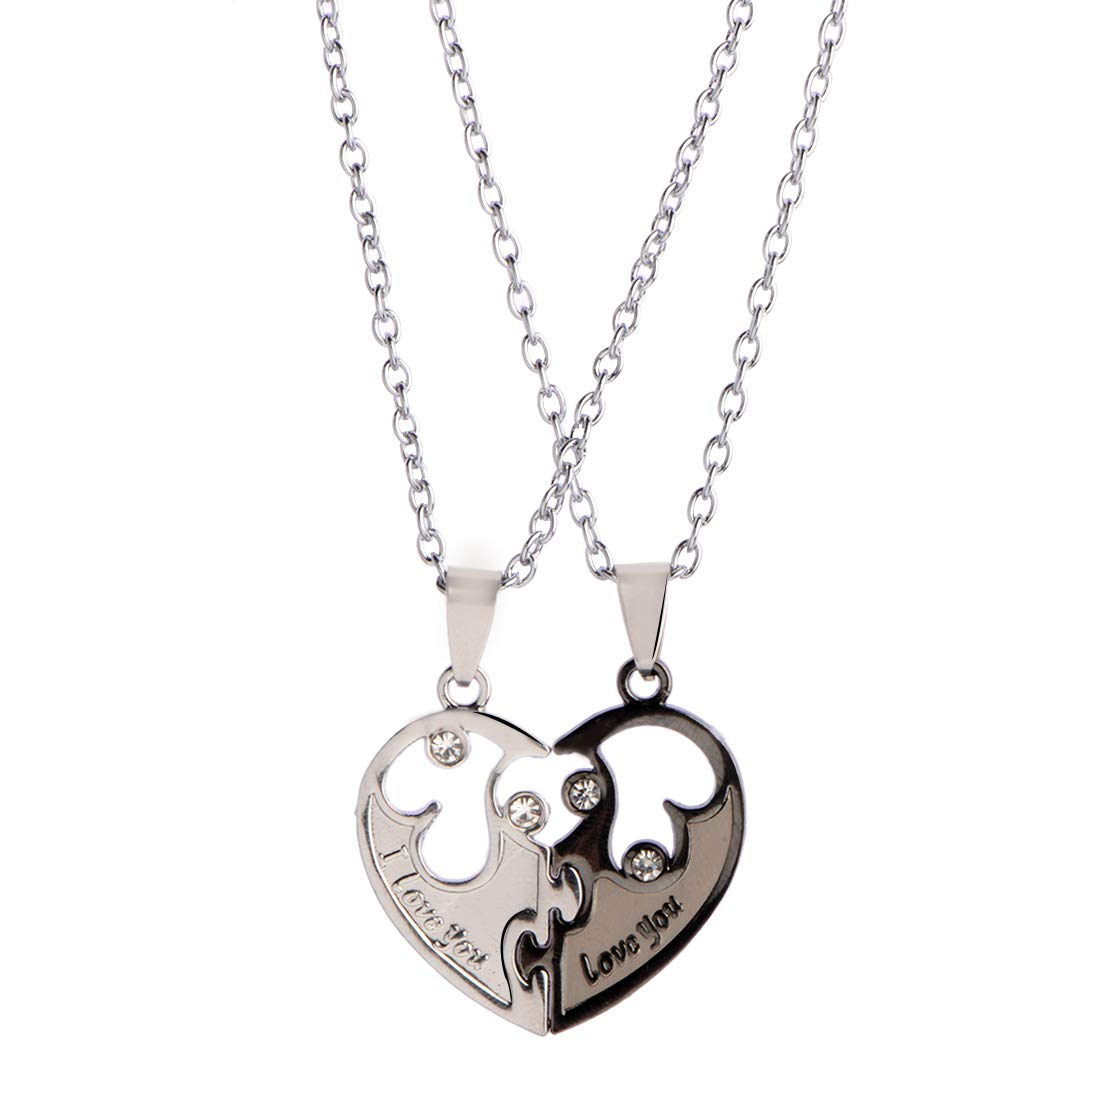 STRIPES Valentine Day Special Silver Stainless Steel 2 Broken Heart Shaped Pendant Men's and Women's Necklaces for Couples -Set of 2 (B07HC7MY9Z) Amazon Price History, Amazon Price Tracker